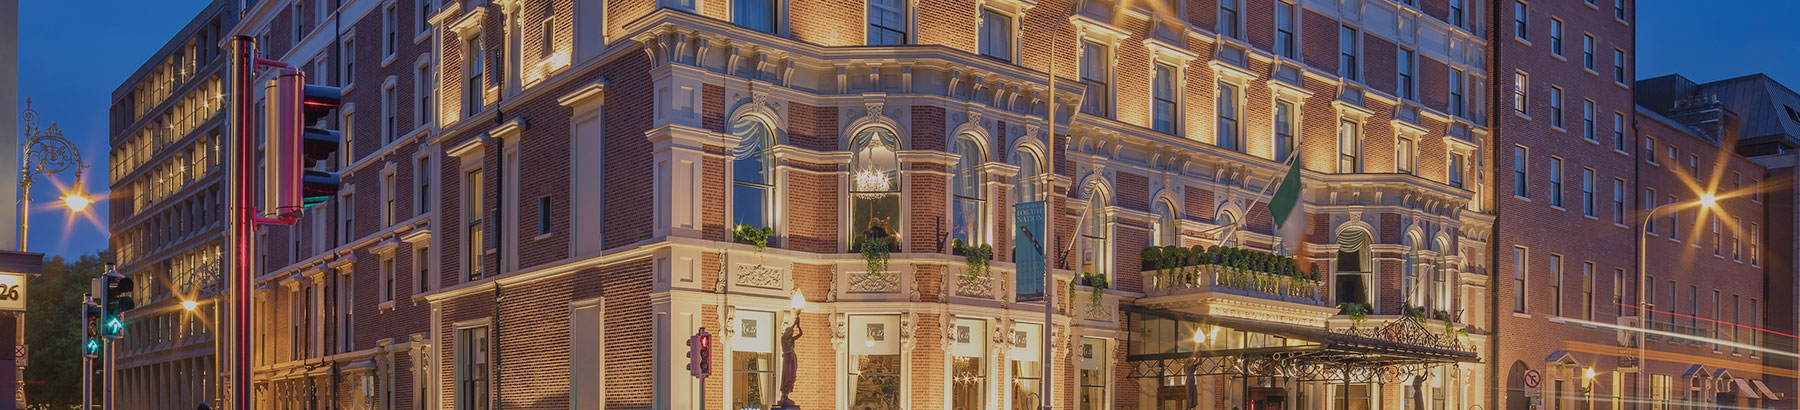 The Shelbourne Voucher Dublin Overnight